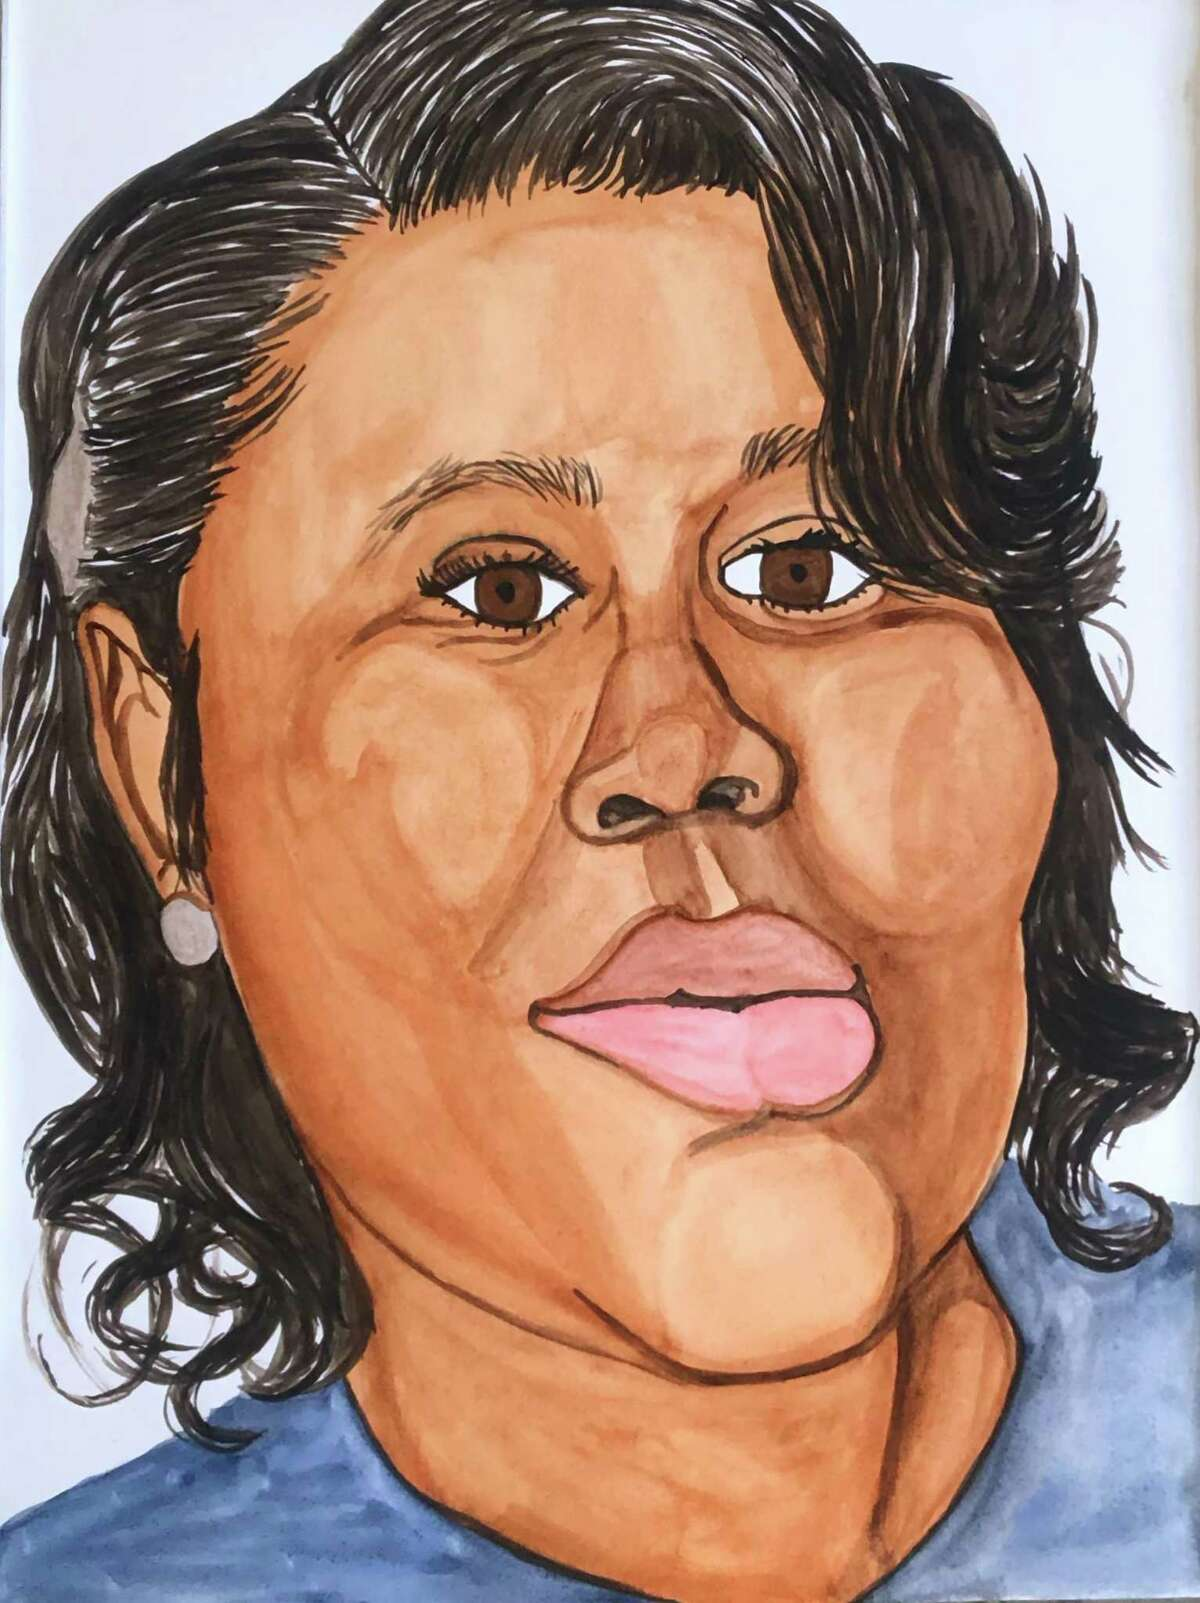 Breonna Taylor, a 26-year-old emergency medical technician shot 8 times by Louisville Police who entered her apartment without knocking, 2020. This is one of the portraits that will be included in theAldrich Contemporary Art Museum's exhibit